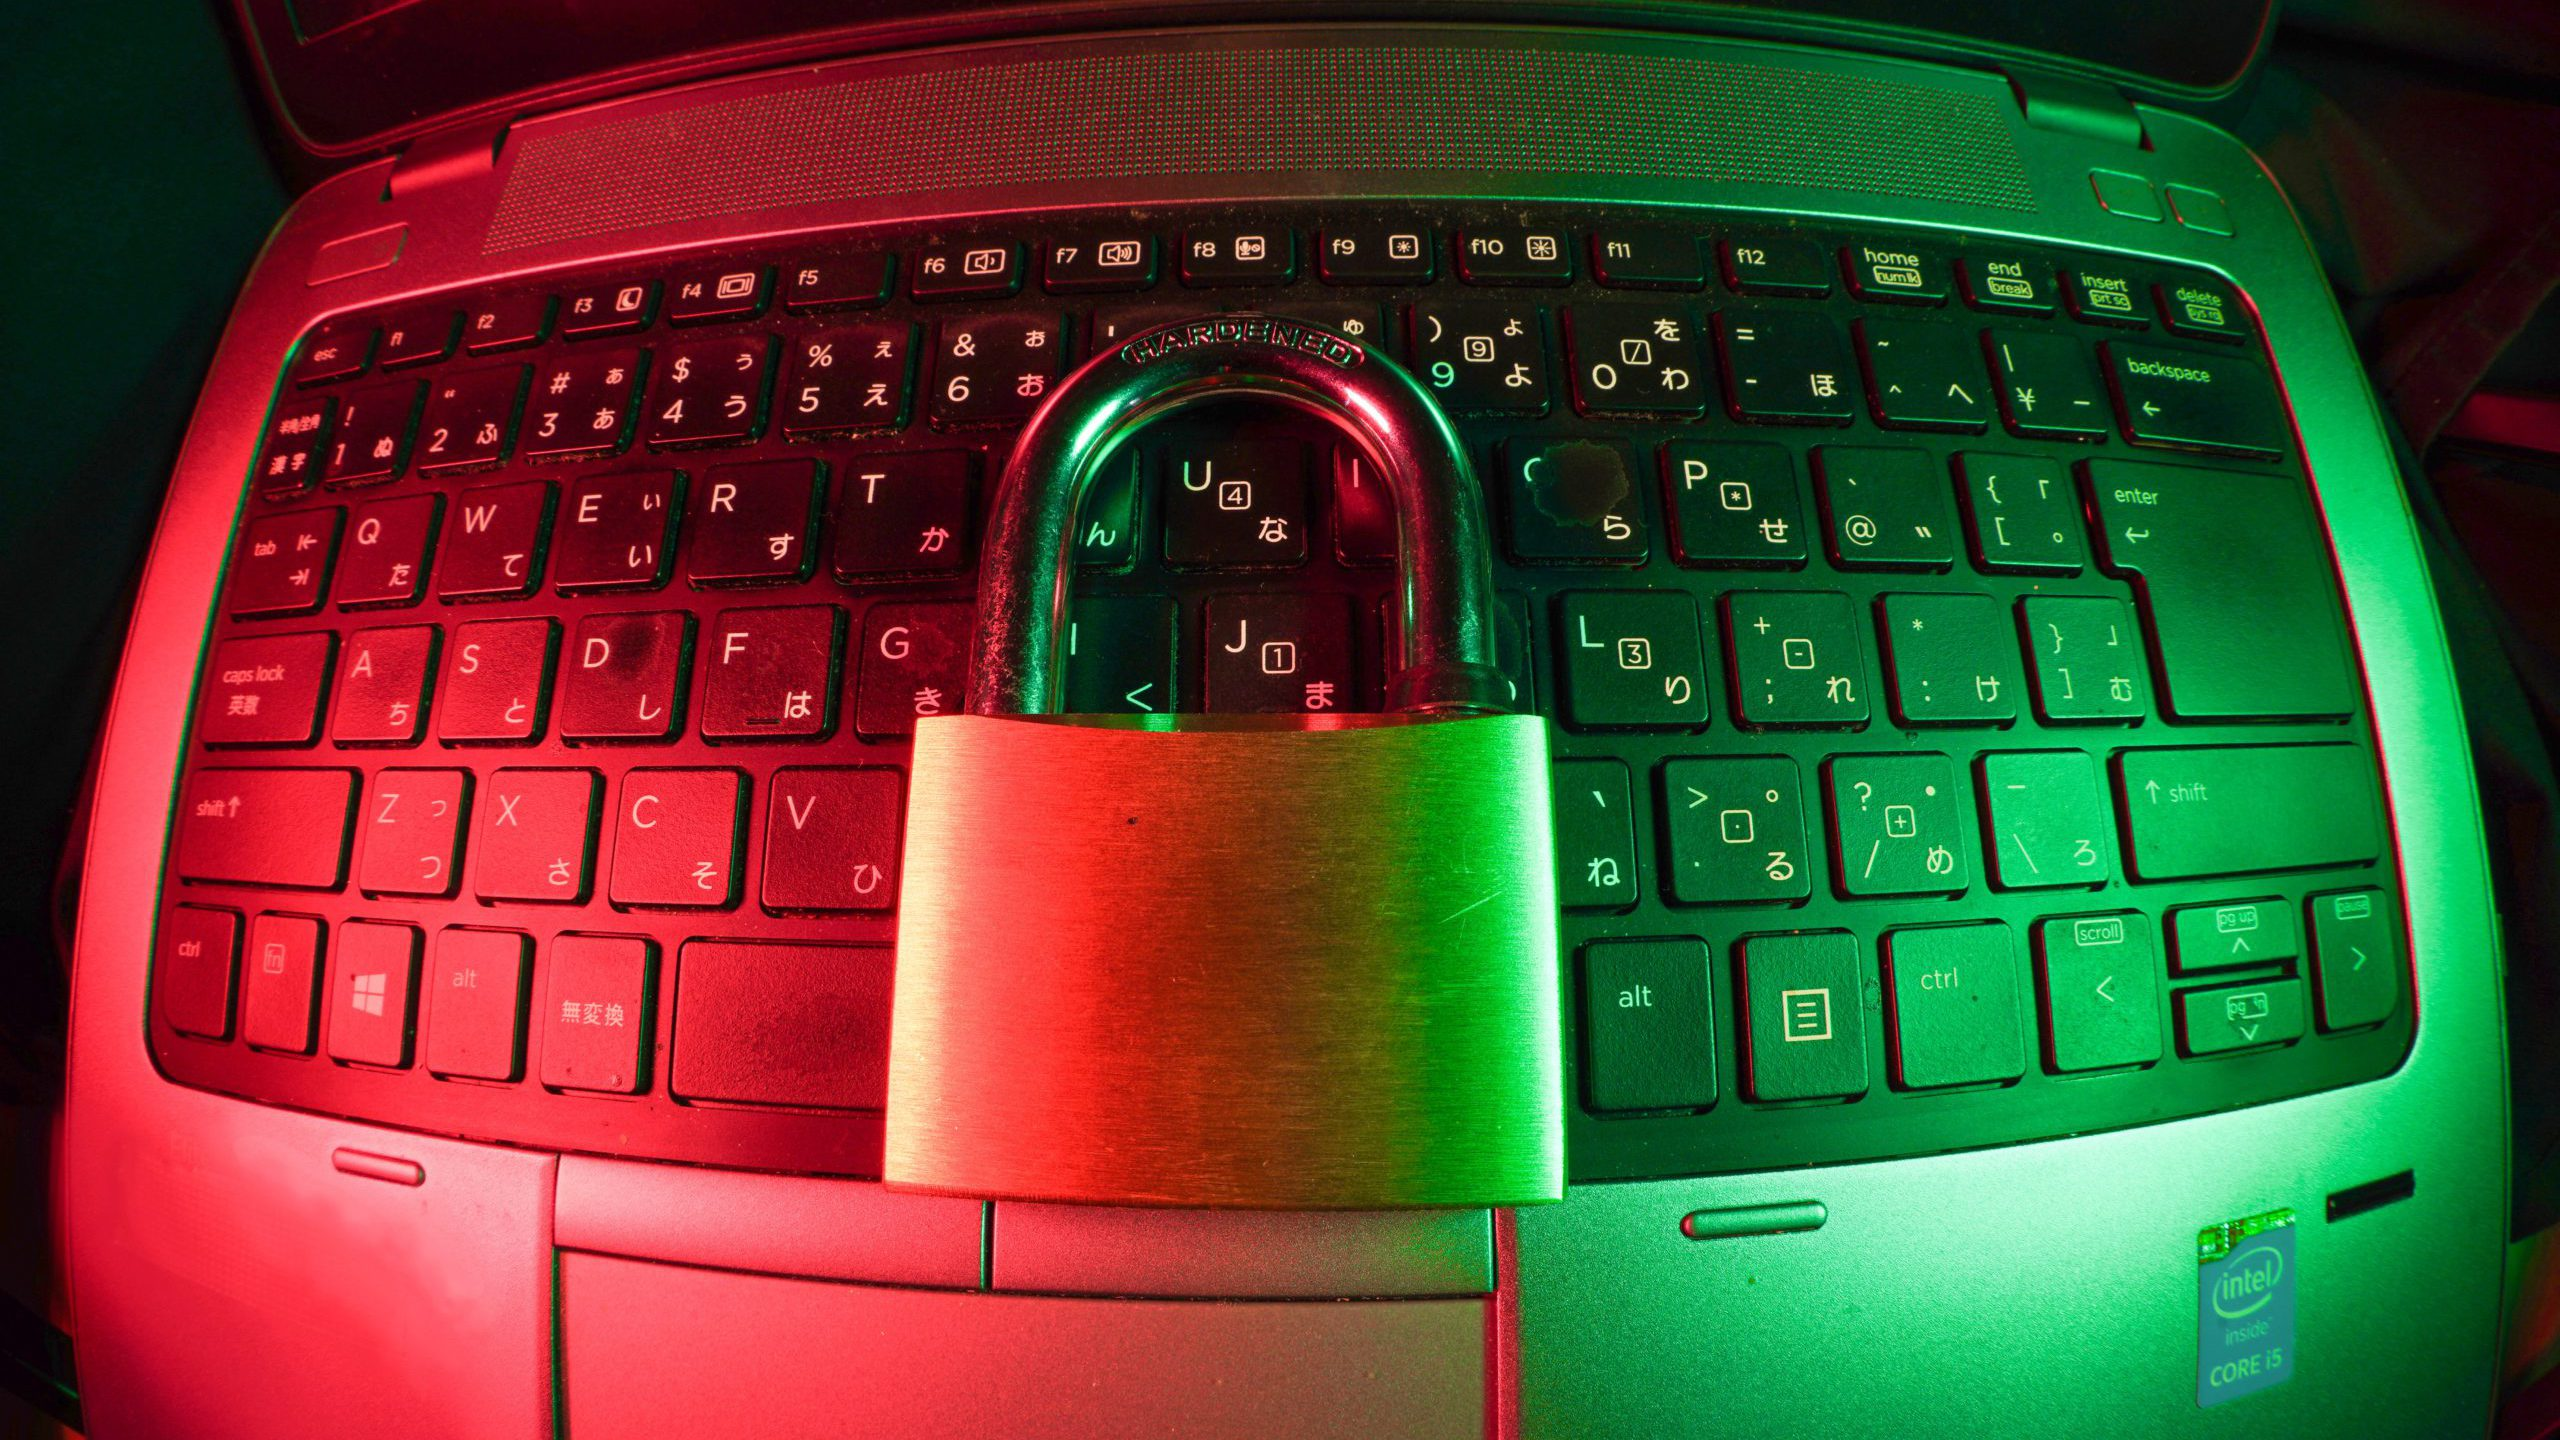 Security a Concern For Accountants Working Remotely